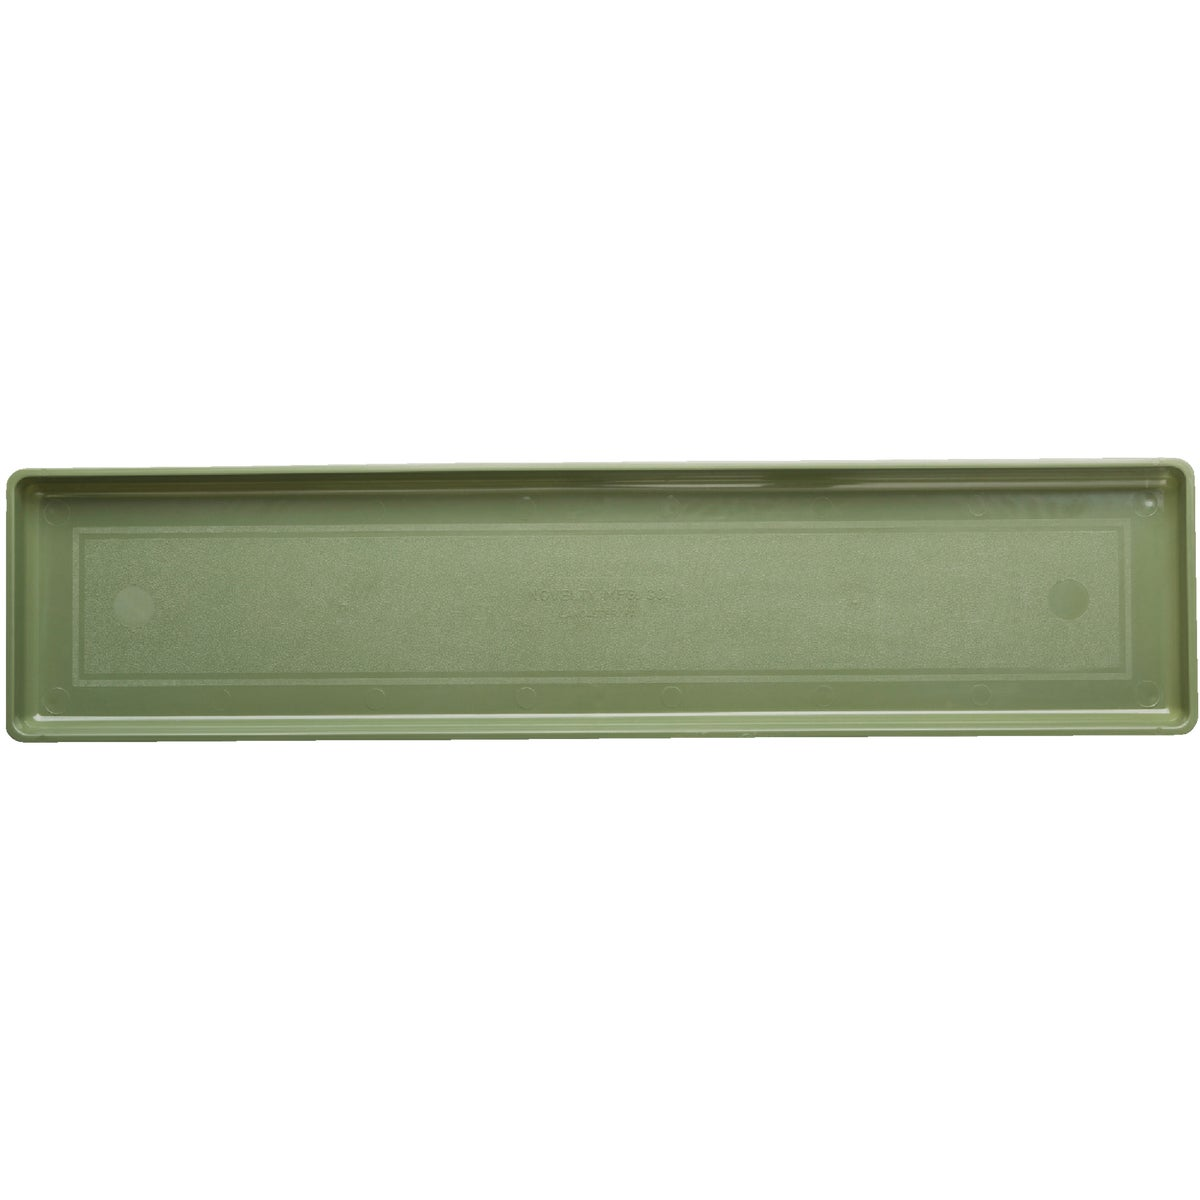 "24"" FLOWERBOX TRAY SAGE - 10240 by Novelty Mfg Co"